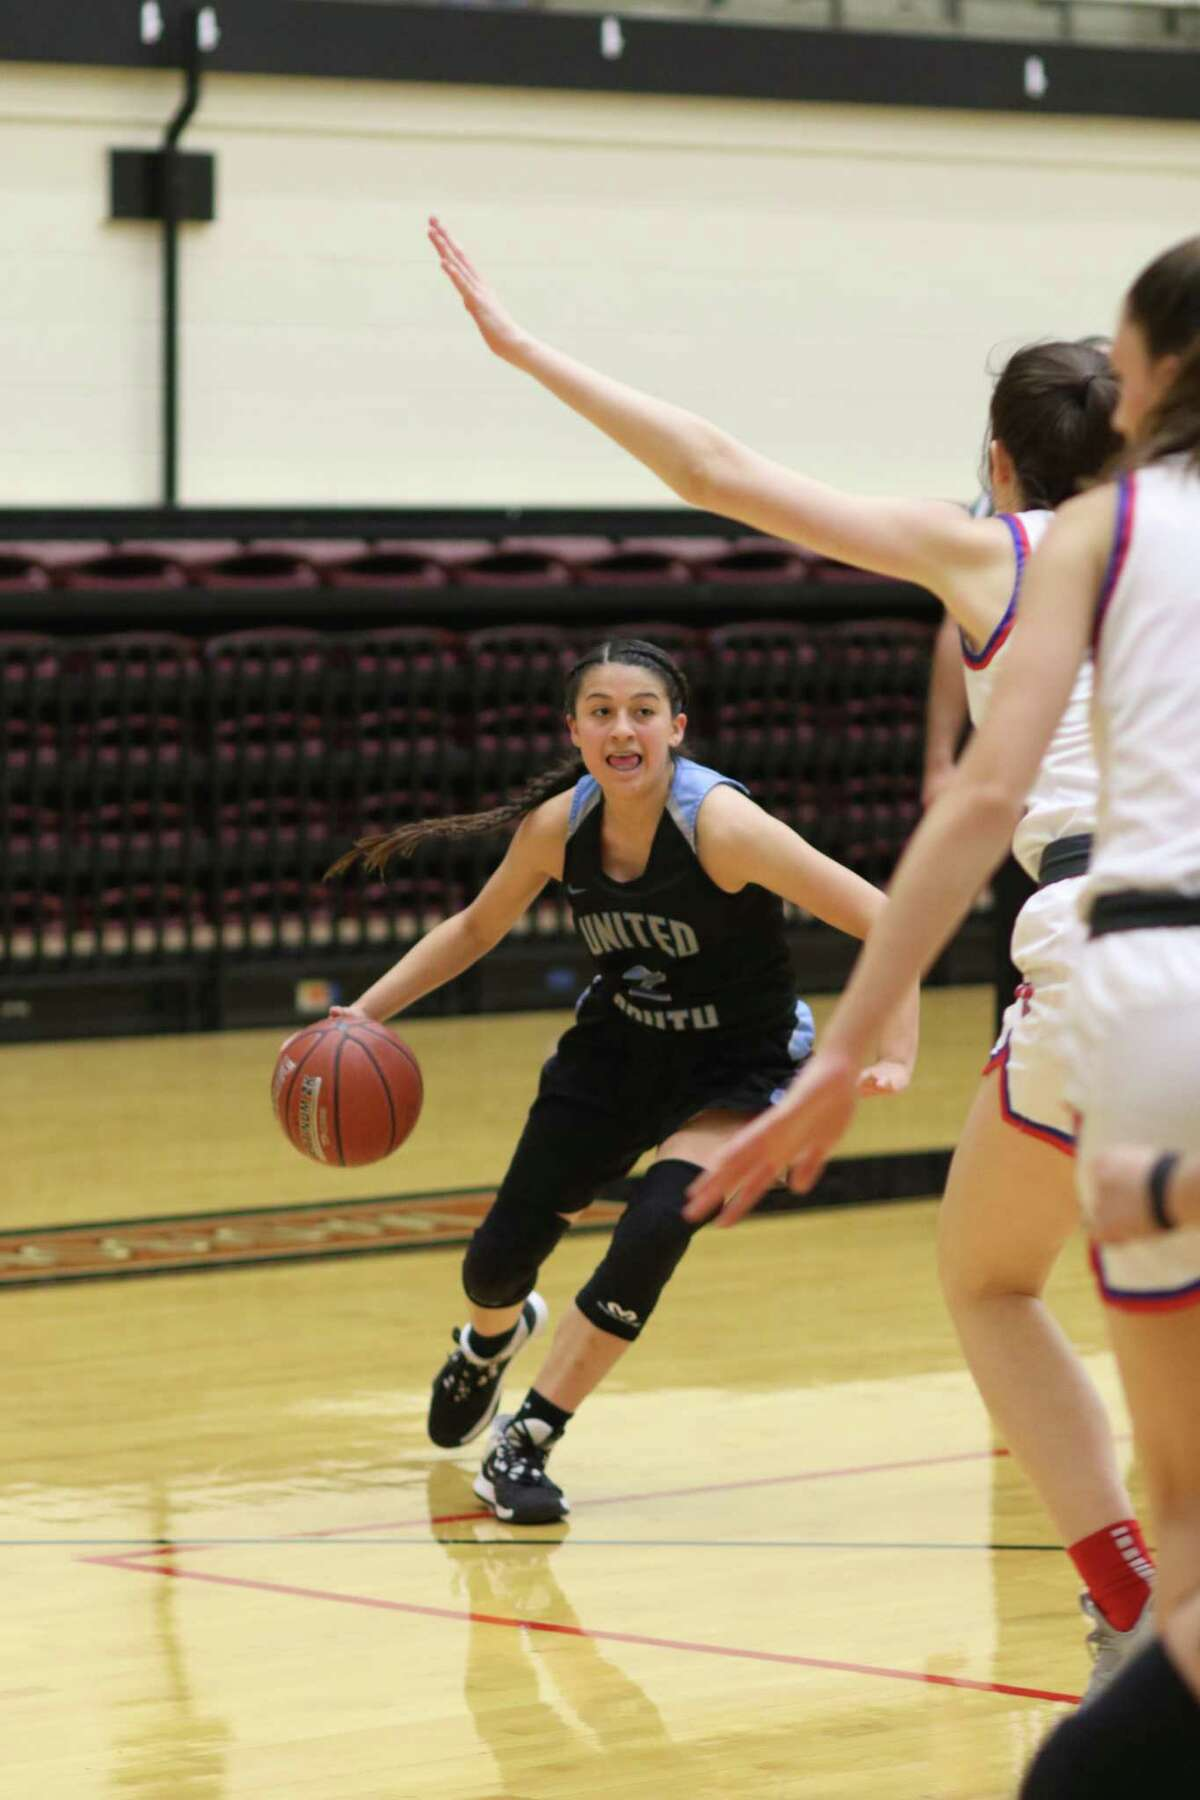 Angelina Lopez and United South were eliminated in the Sweet 16 Friday with a 53-29 loss to No. 6 Austin Westlake at the Blossom Athletic Center in San Antonio.